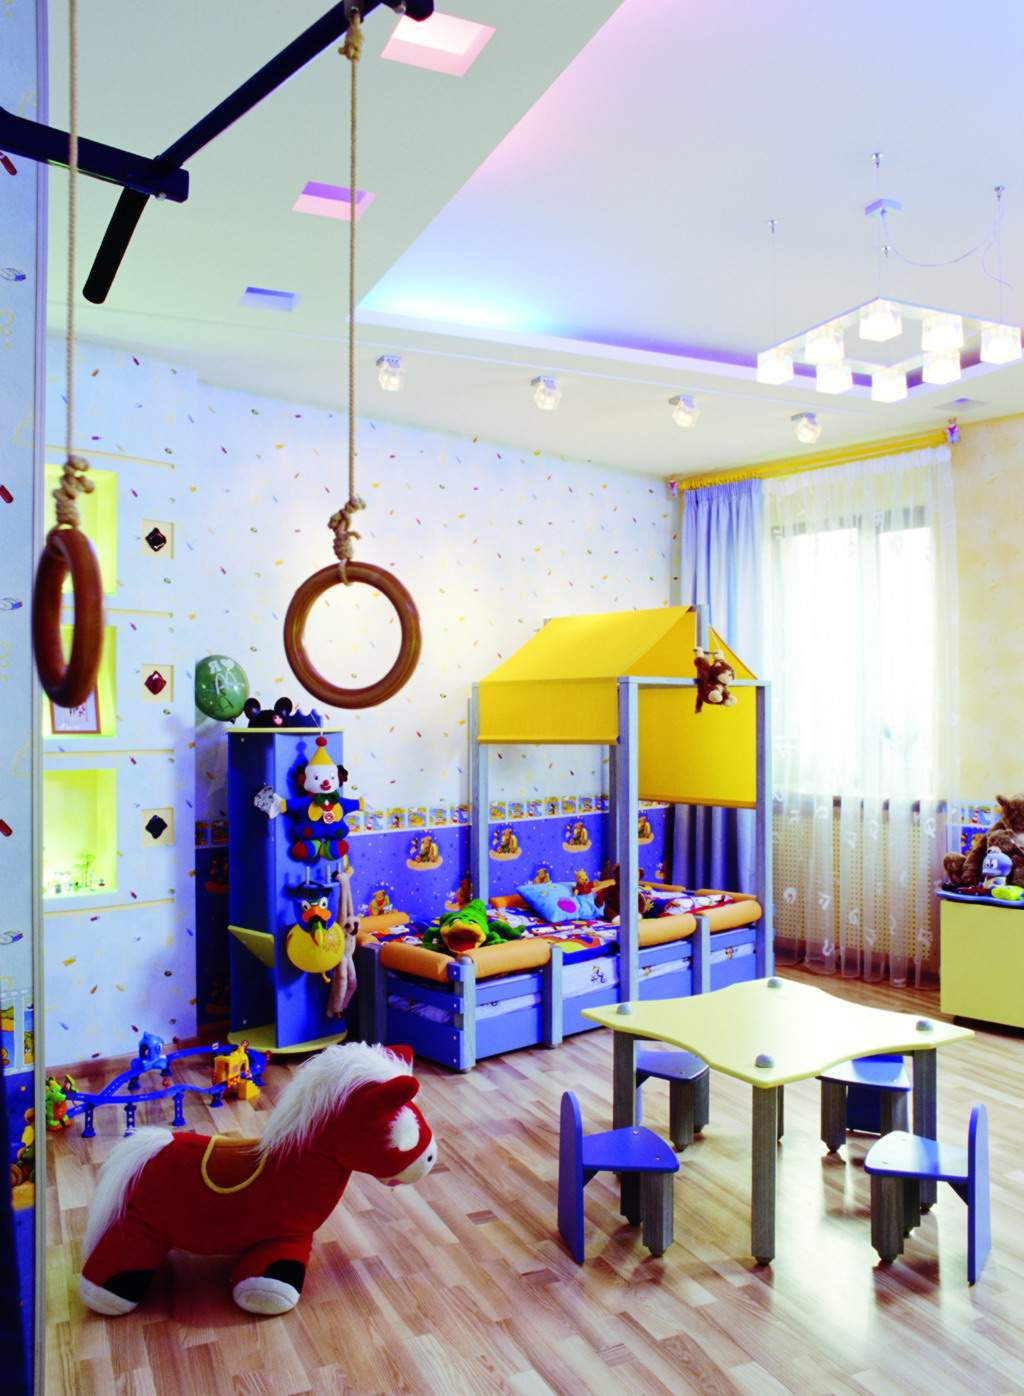 15 creative kids bedroom decorating ideas Youth bedroom design ideas